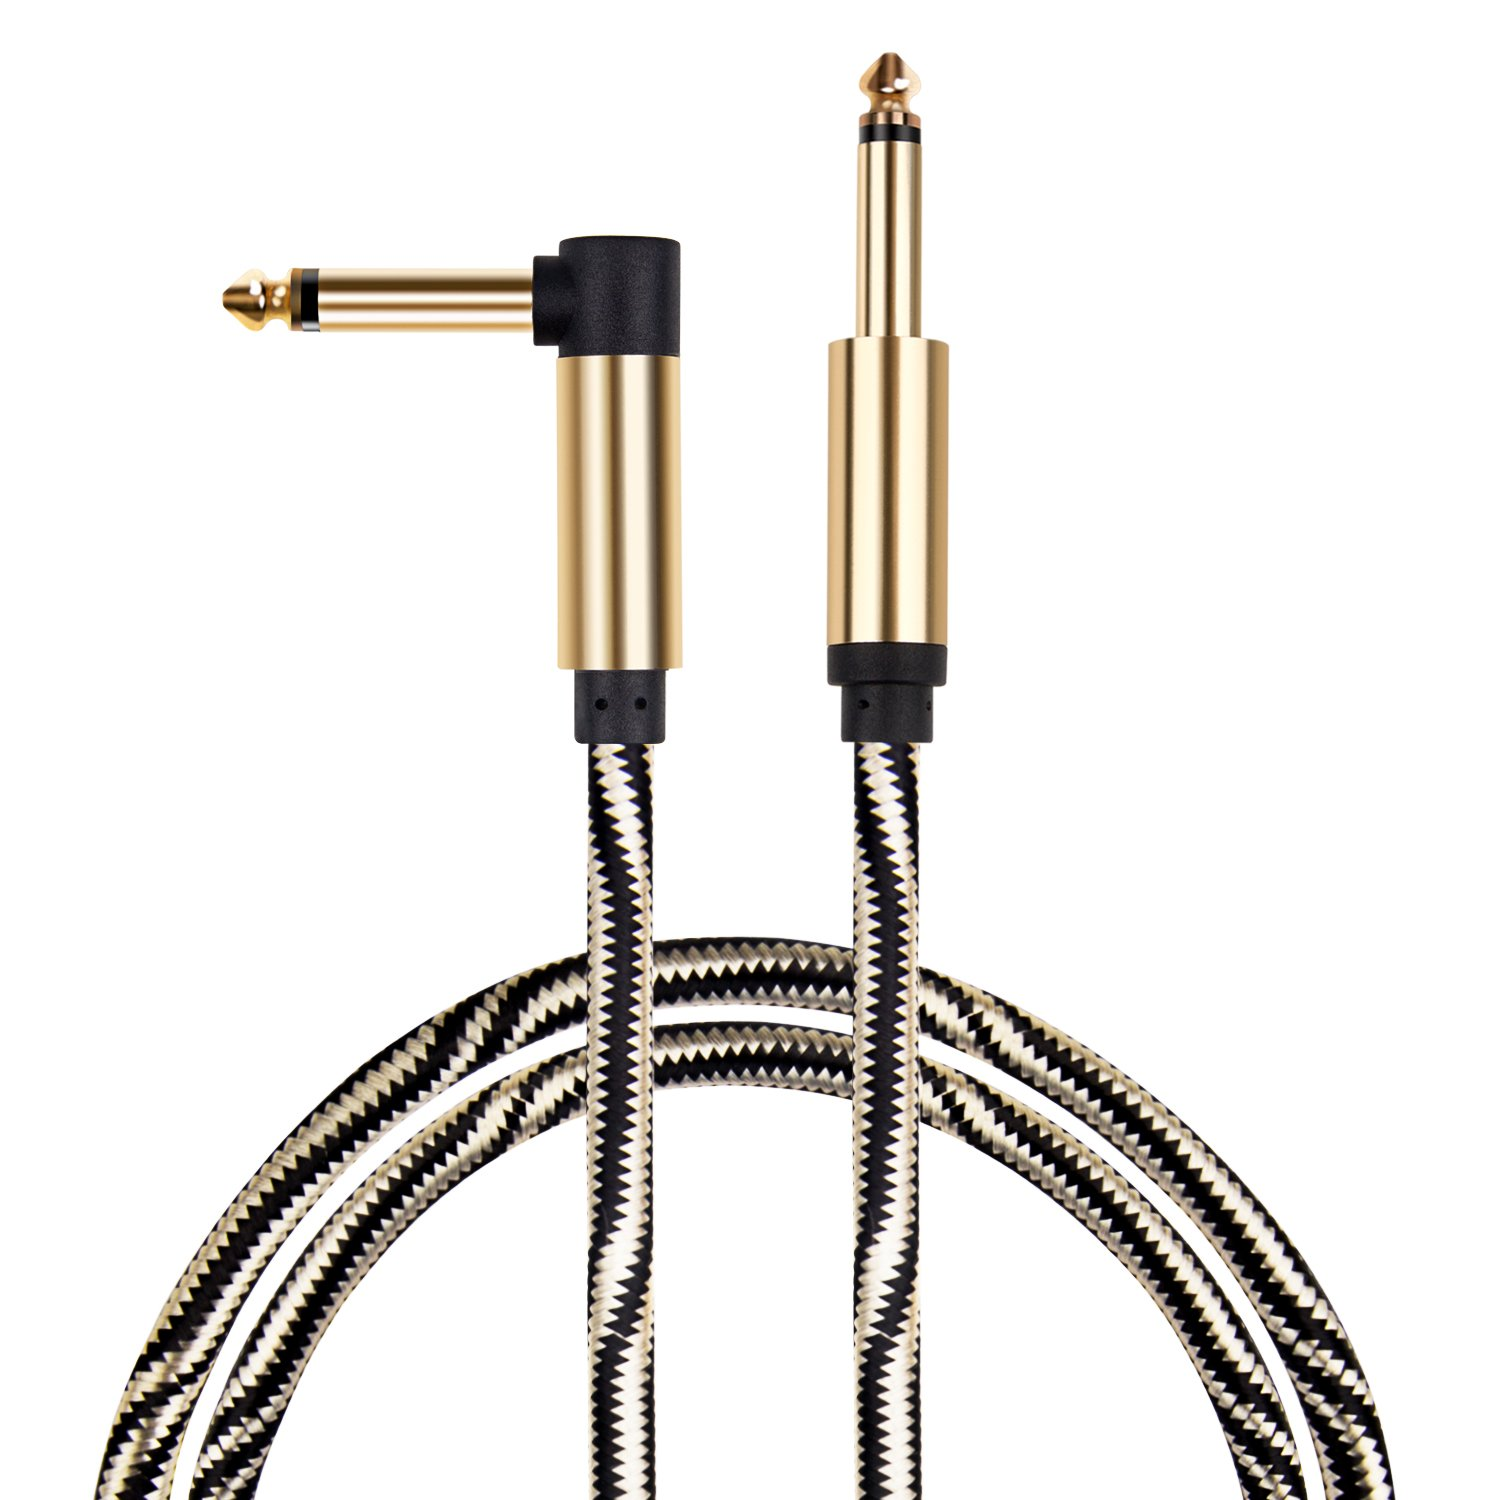 Guitar cable, Mugig Performance Instrument Cables 10ft, 1/4 Inch (6.3mm) Straight to Right Angle Golden Black Copper Shielding Line for Electric Guitar, Bass Guitar, Keyboard